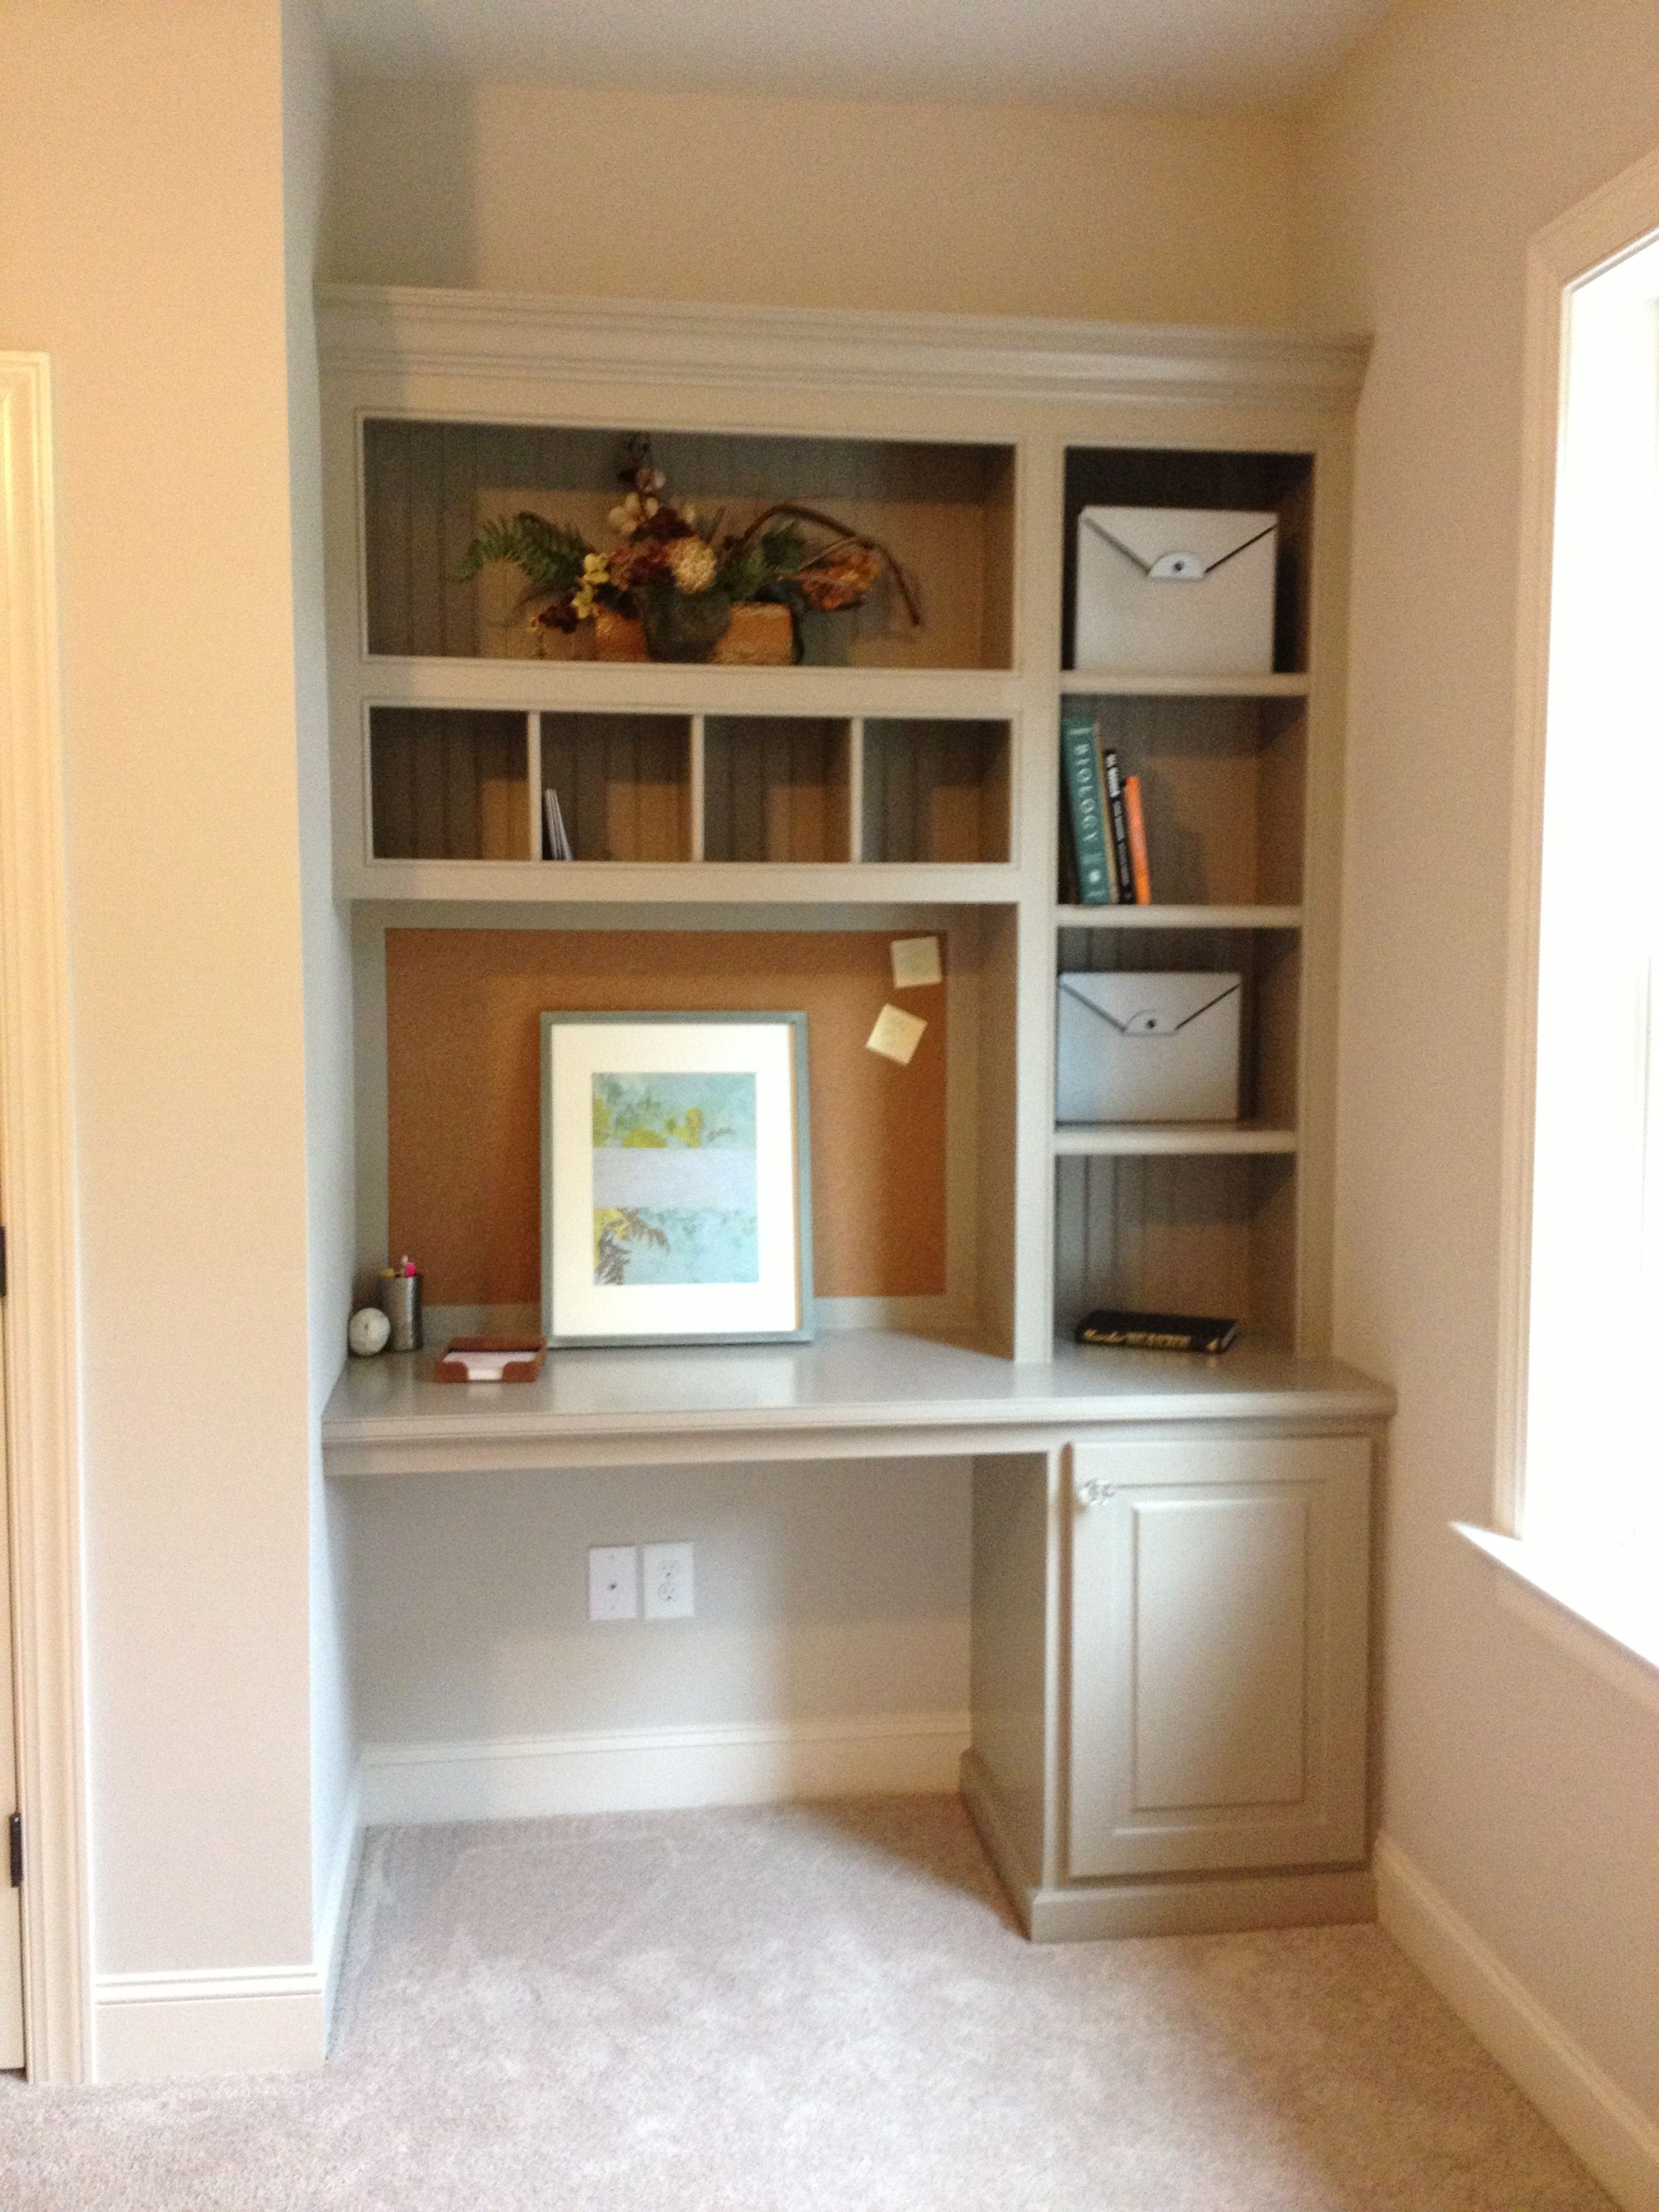 Built In Shelving Home Office Design Bookshelf Desk Bedroom Desk